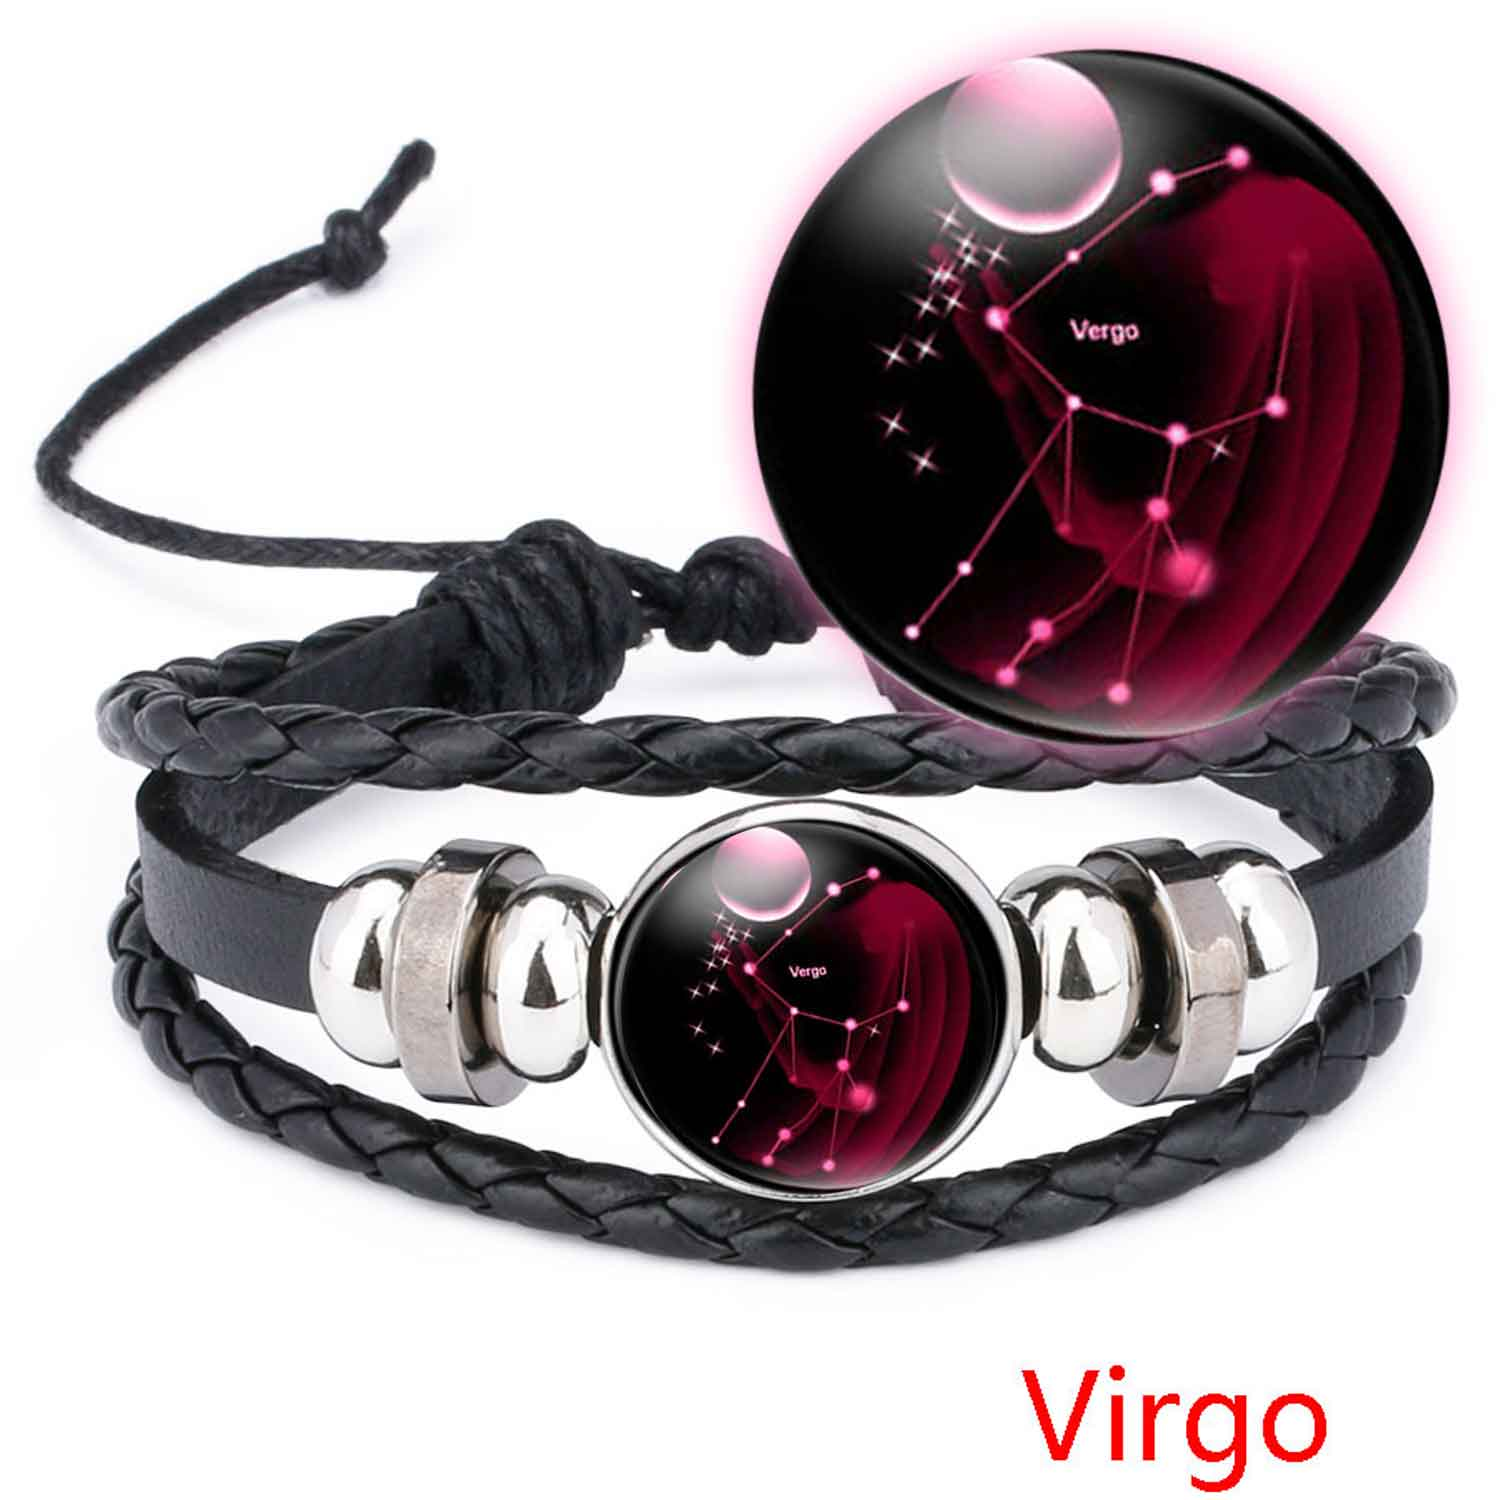 The Extreme Virgo Bracelet - GearBody